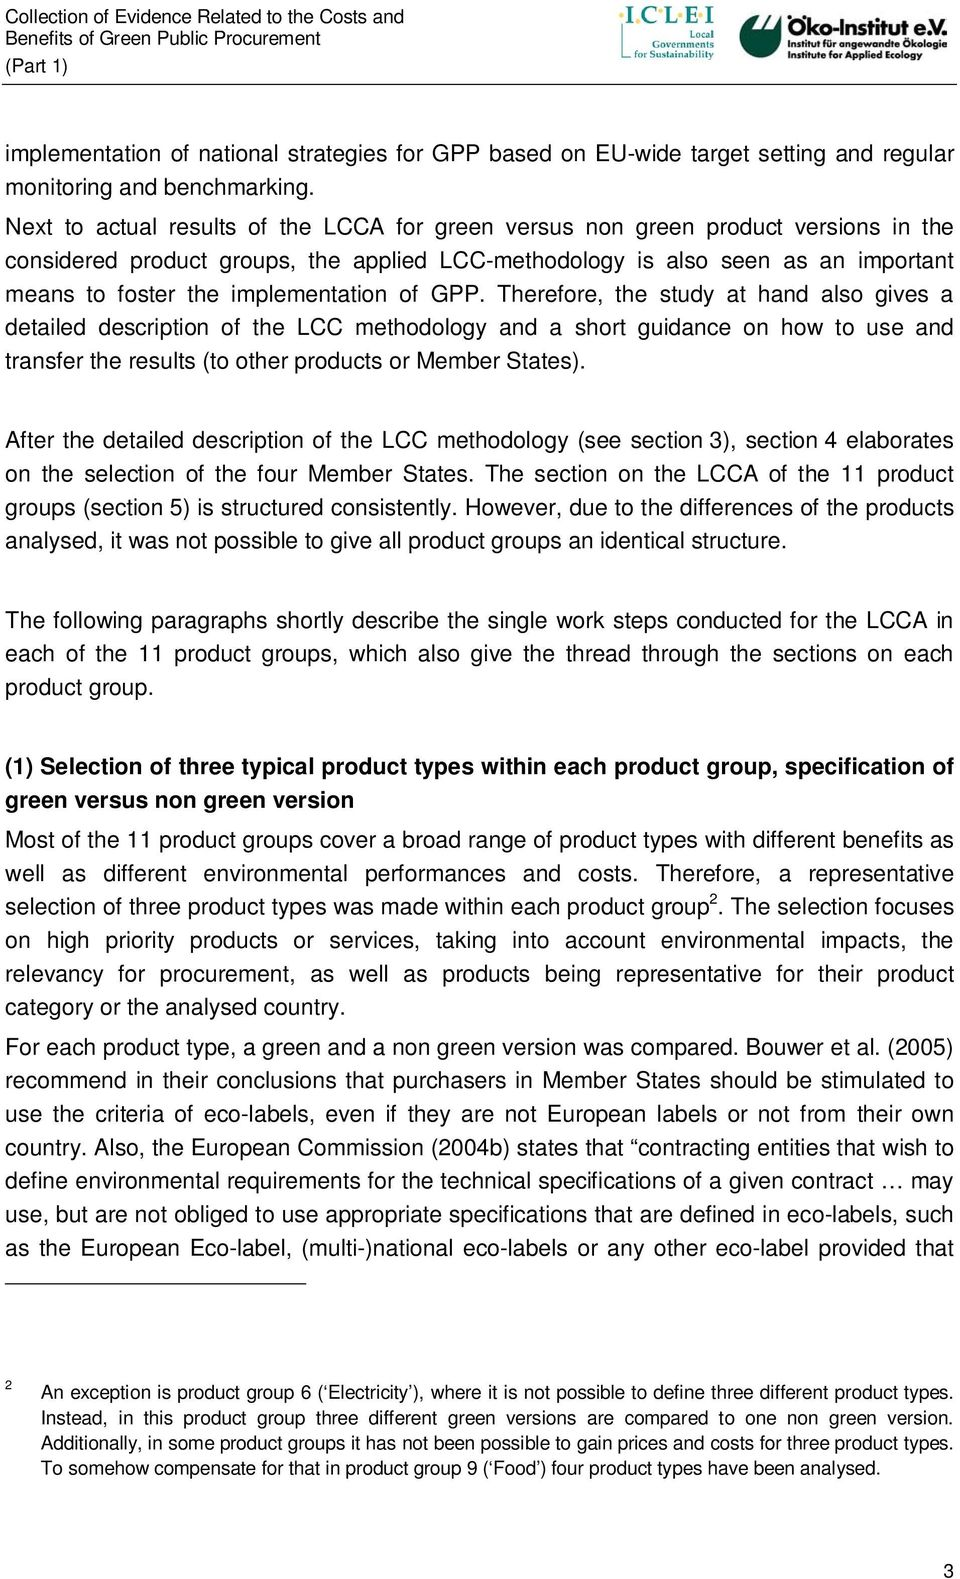 Next to actual results of the LCCA for green versus non green product versions in the considered product groups, the applied LCC-methodology is also seen as an important means to foster the